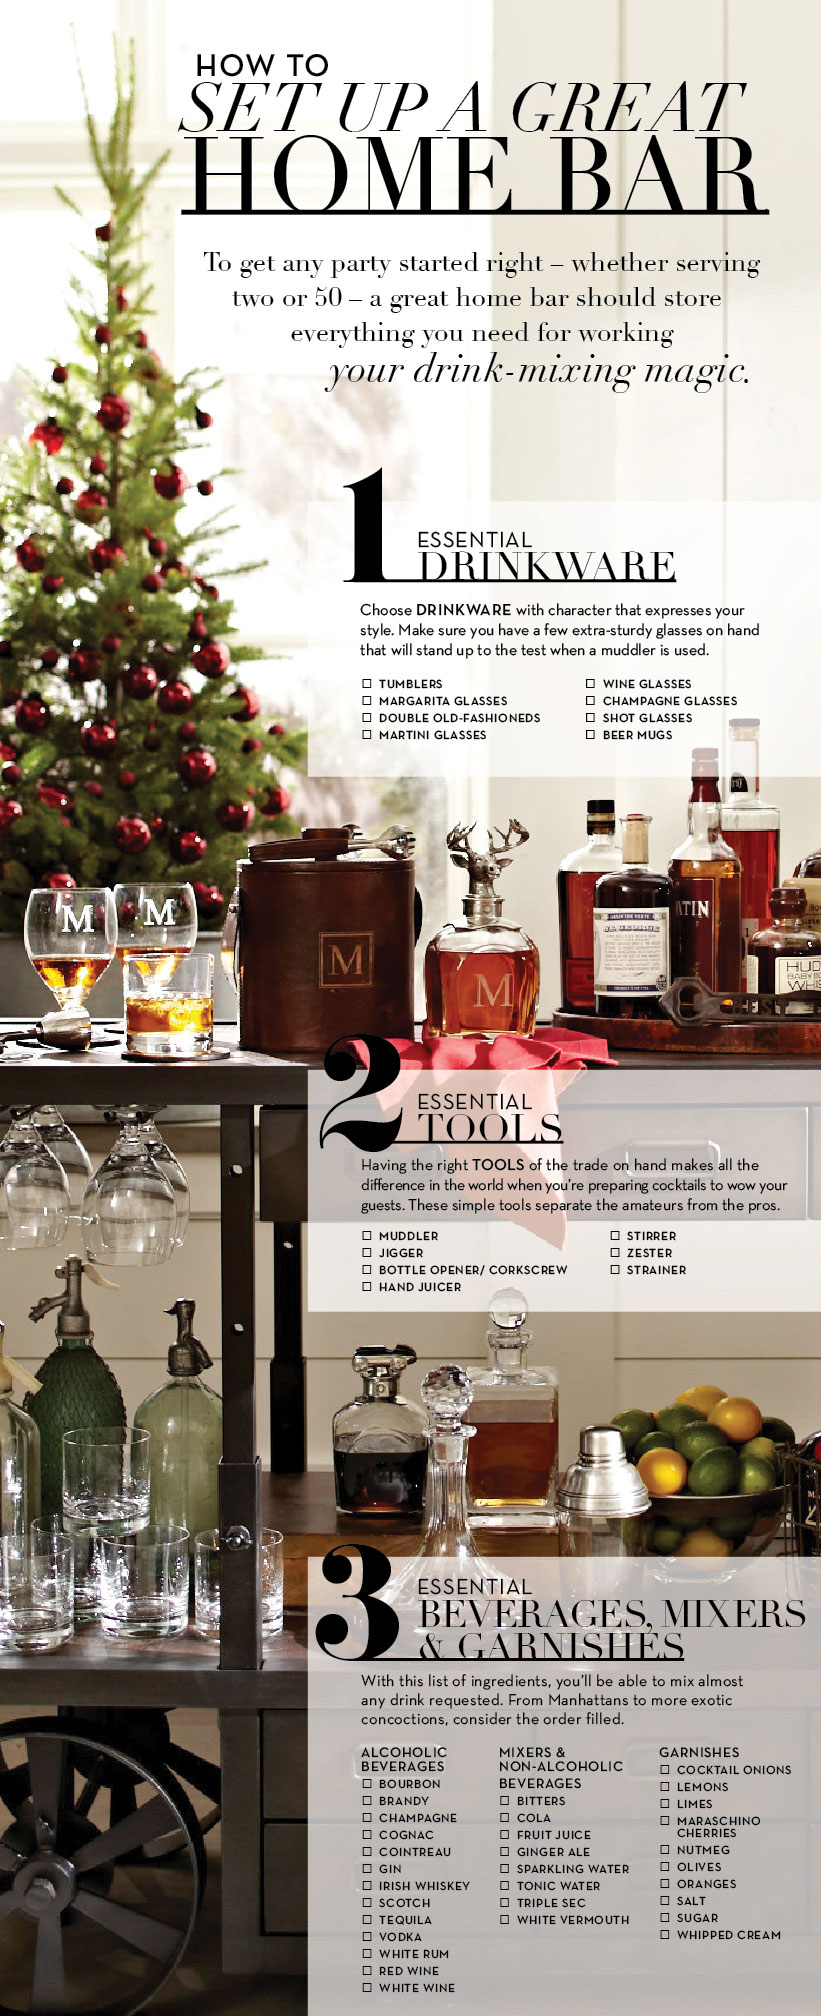 how-to-set-up-a-home-bar